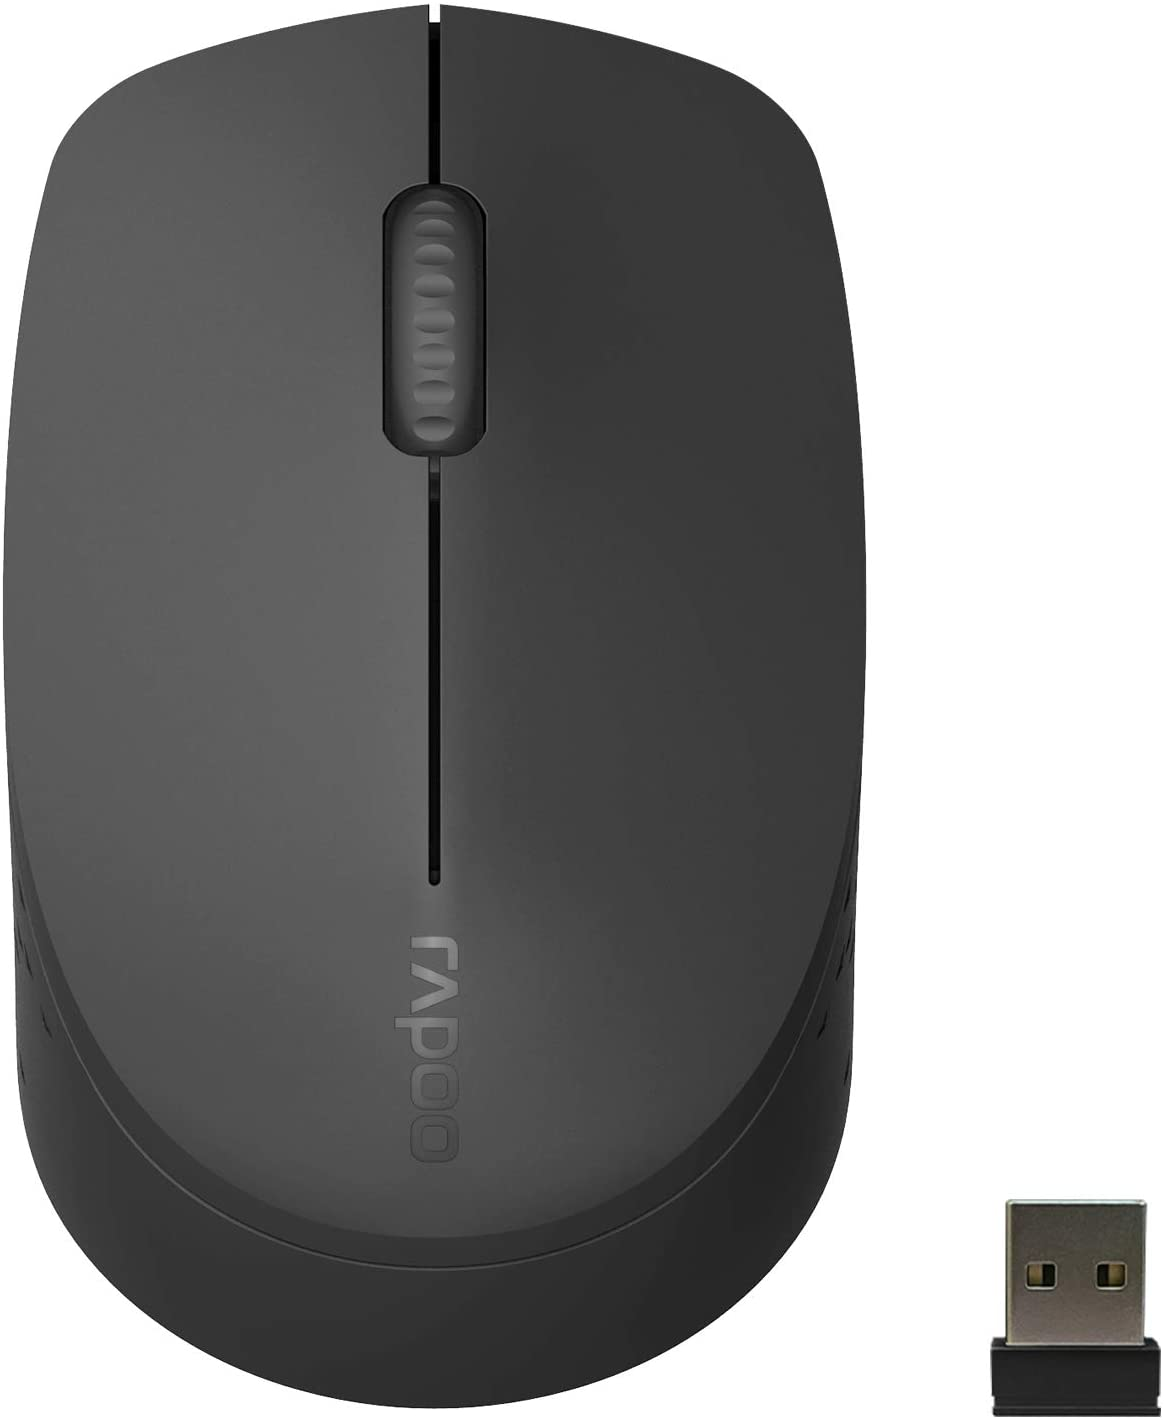 RAPOO Multi-Device Bluetooth Mouse, Connect Up to 3 Different Devices, Noiseless Ergonomic Design Comfortable Use, 9 Month Long Battery Life, for Computer Laptop MacBook Tablets Phones, Black